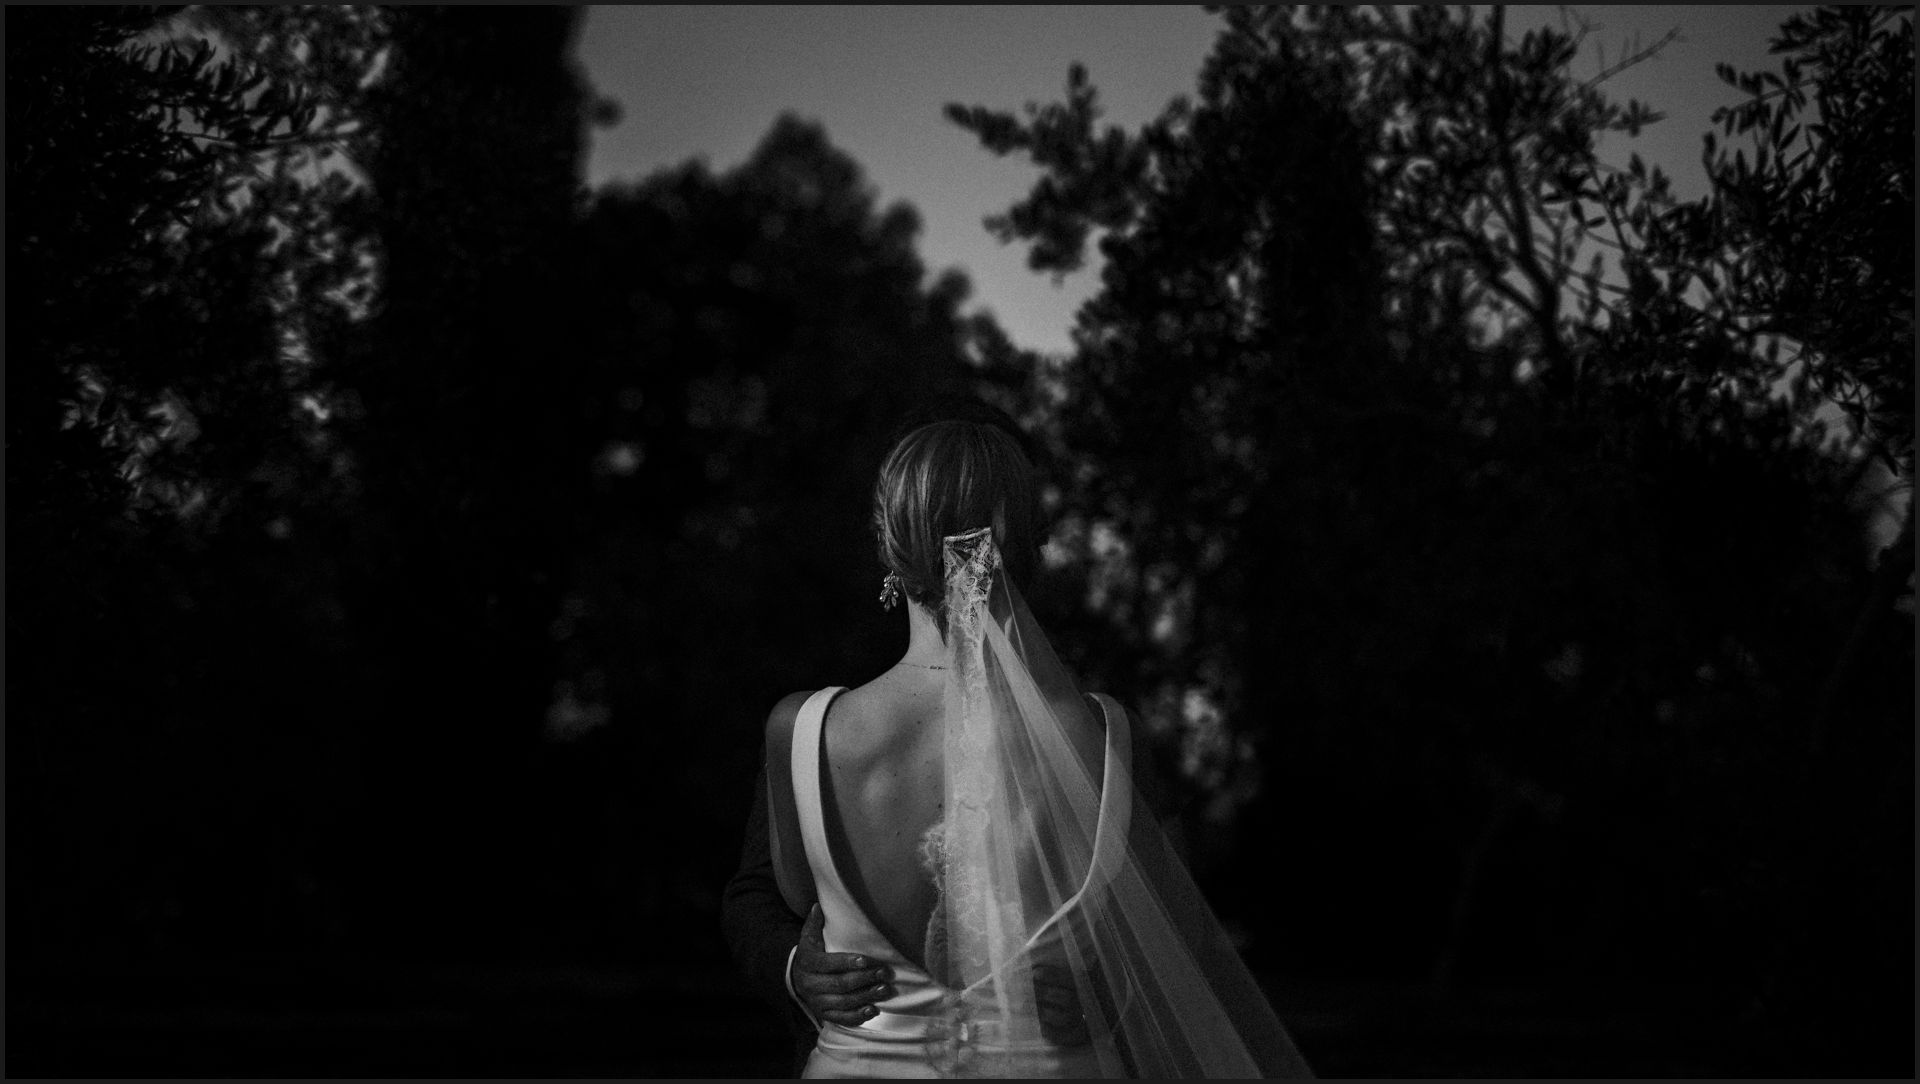 tenuta di canonica, umbria, wedding, bride, groom, love, black and white, portrait, elegance